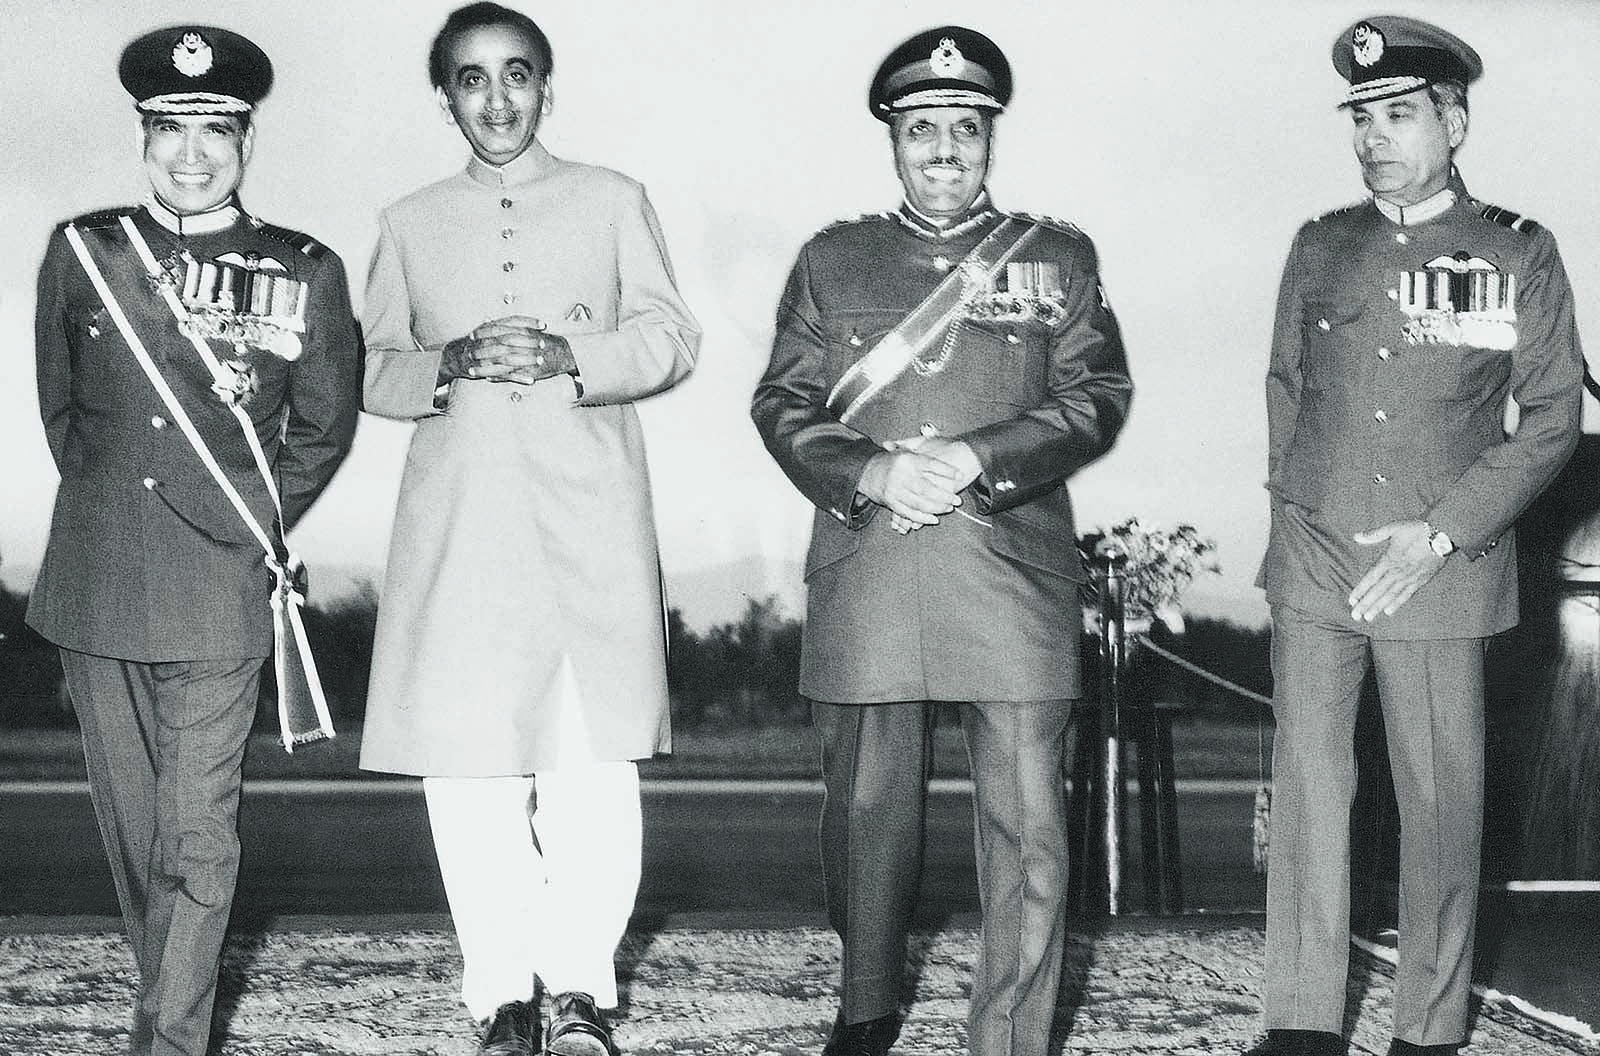 From left to right: Outgoing Air Chief Marshal Jamal A. Khan, Prime Minister Mohammad Khan Junejo, President Ziaul Haq and incoming Air Chief Marshal Hakeemullah Khan Durrani after a brief ceremonial parade in Rawalpindi on March 8, 1988. The characteristic Zia grin is hard to miss. | Photo: Dawn / White Star Archives